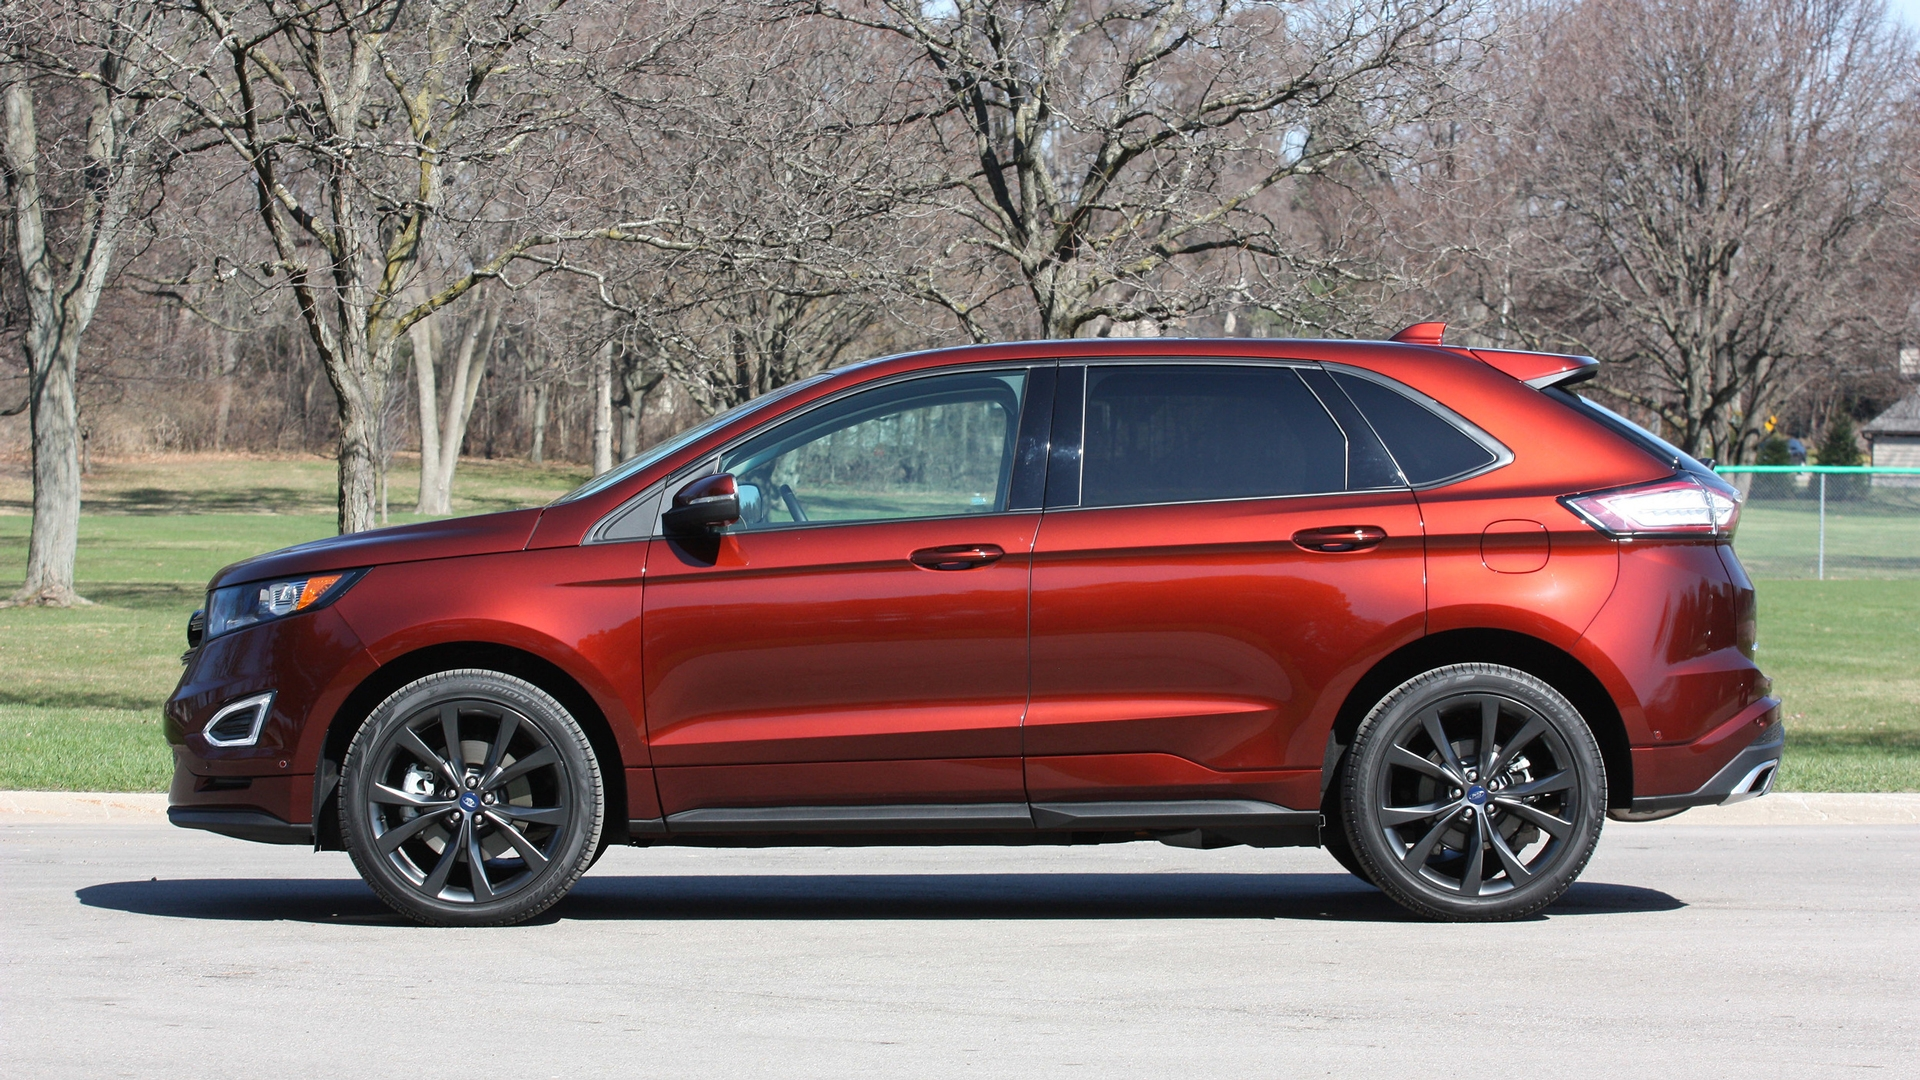 2016 Ford Edge Bronze Fire Pictures To Pin On Pinterest